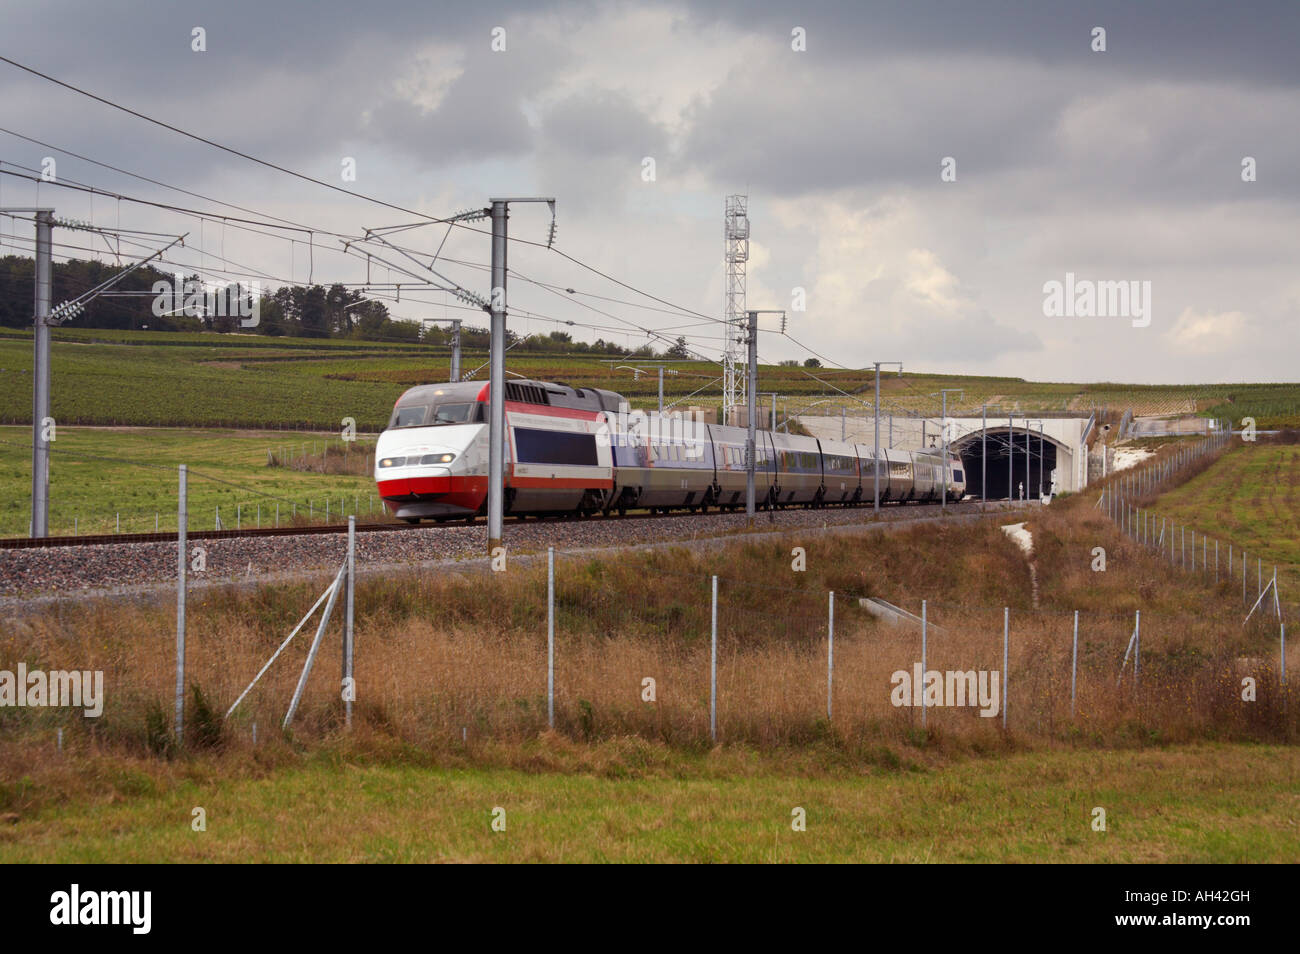 train on the paris to strasbourg tgv line emerging from tunnel stock photo royalty free image. Black Bedroom Furniture Sets. Home Design Ideas